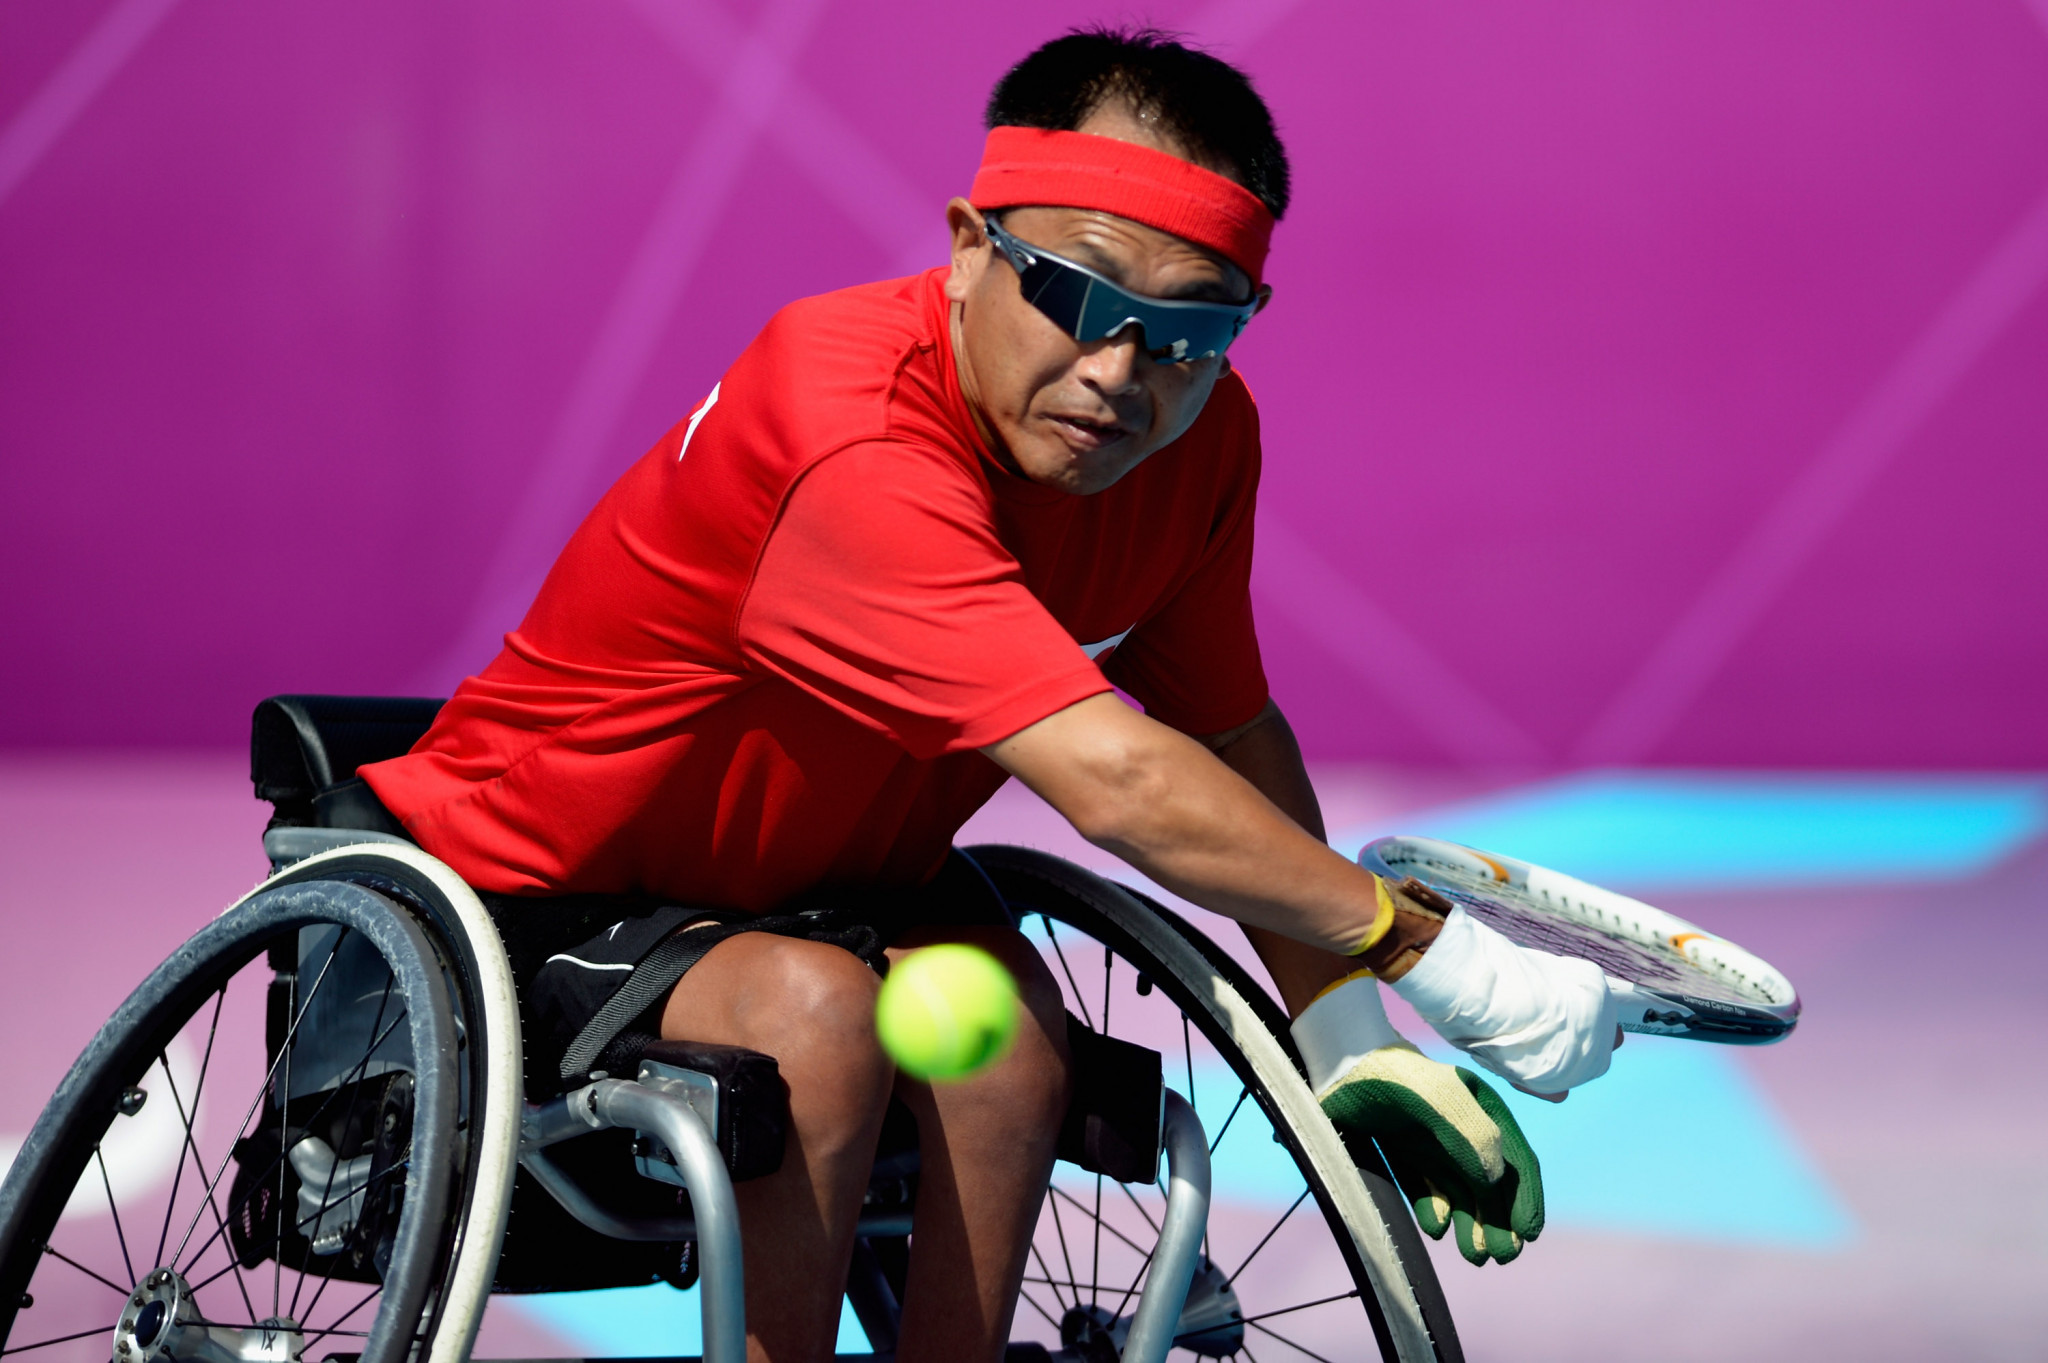 Japan's Moroishi to face quad singles top seed Lapthorne at British Open Wheelchair Tennis Championships